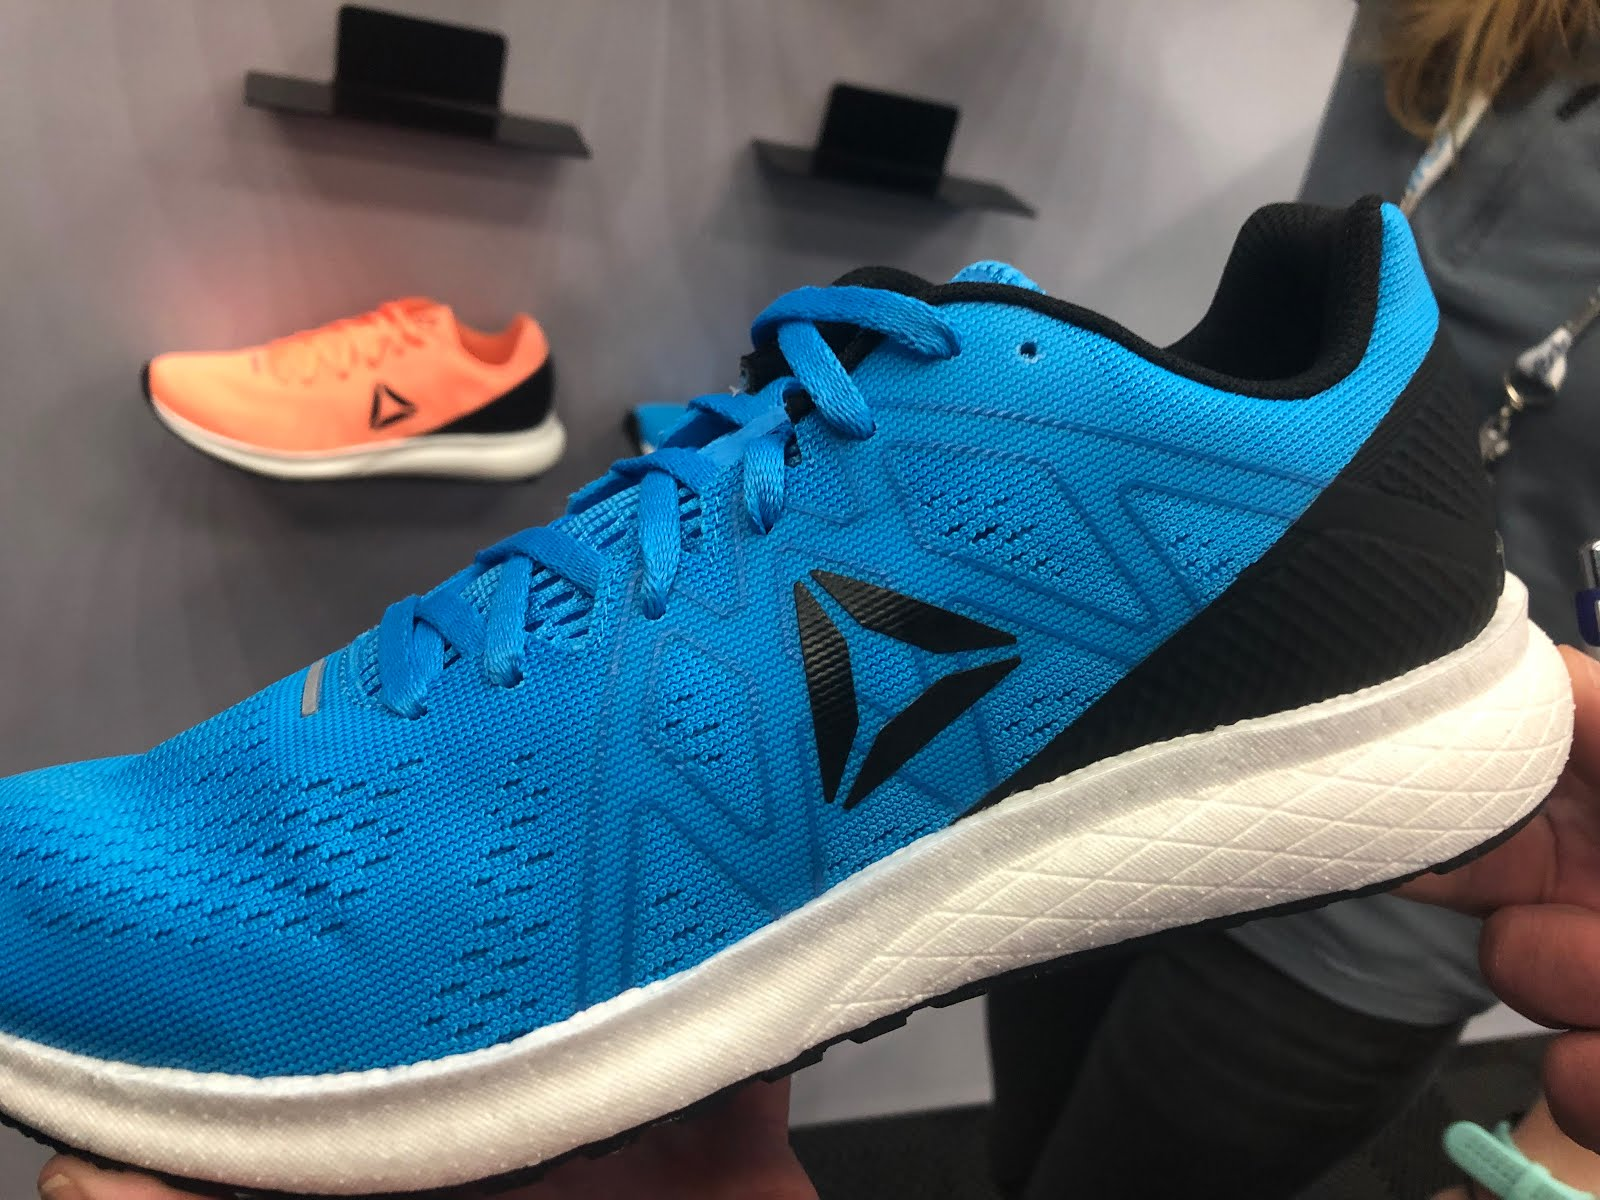 8b5071075a9 The Floatride Energy features a simple engineered mesh upper reminding in  its overlays design of the Floatride Run Fast but of somewhat more  substantial ...